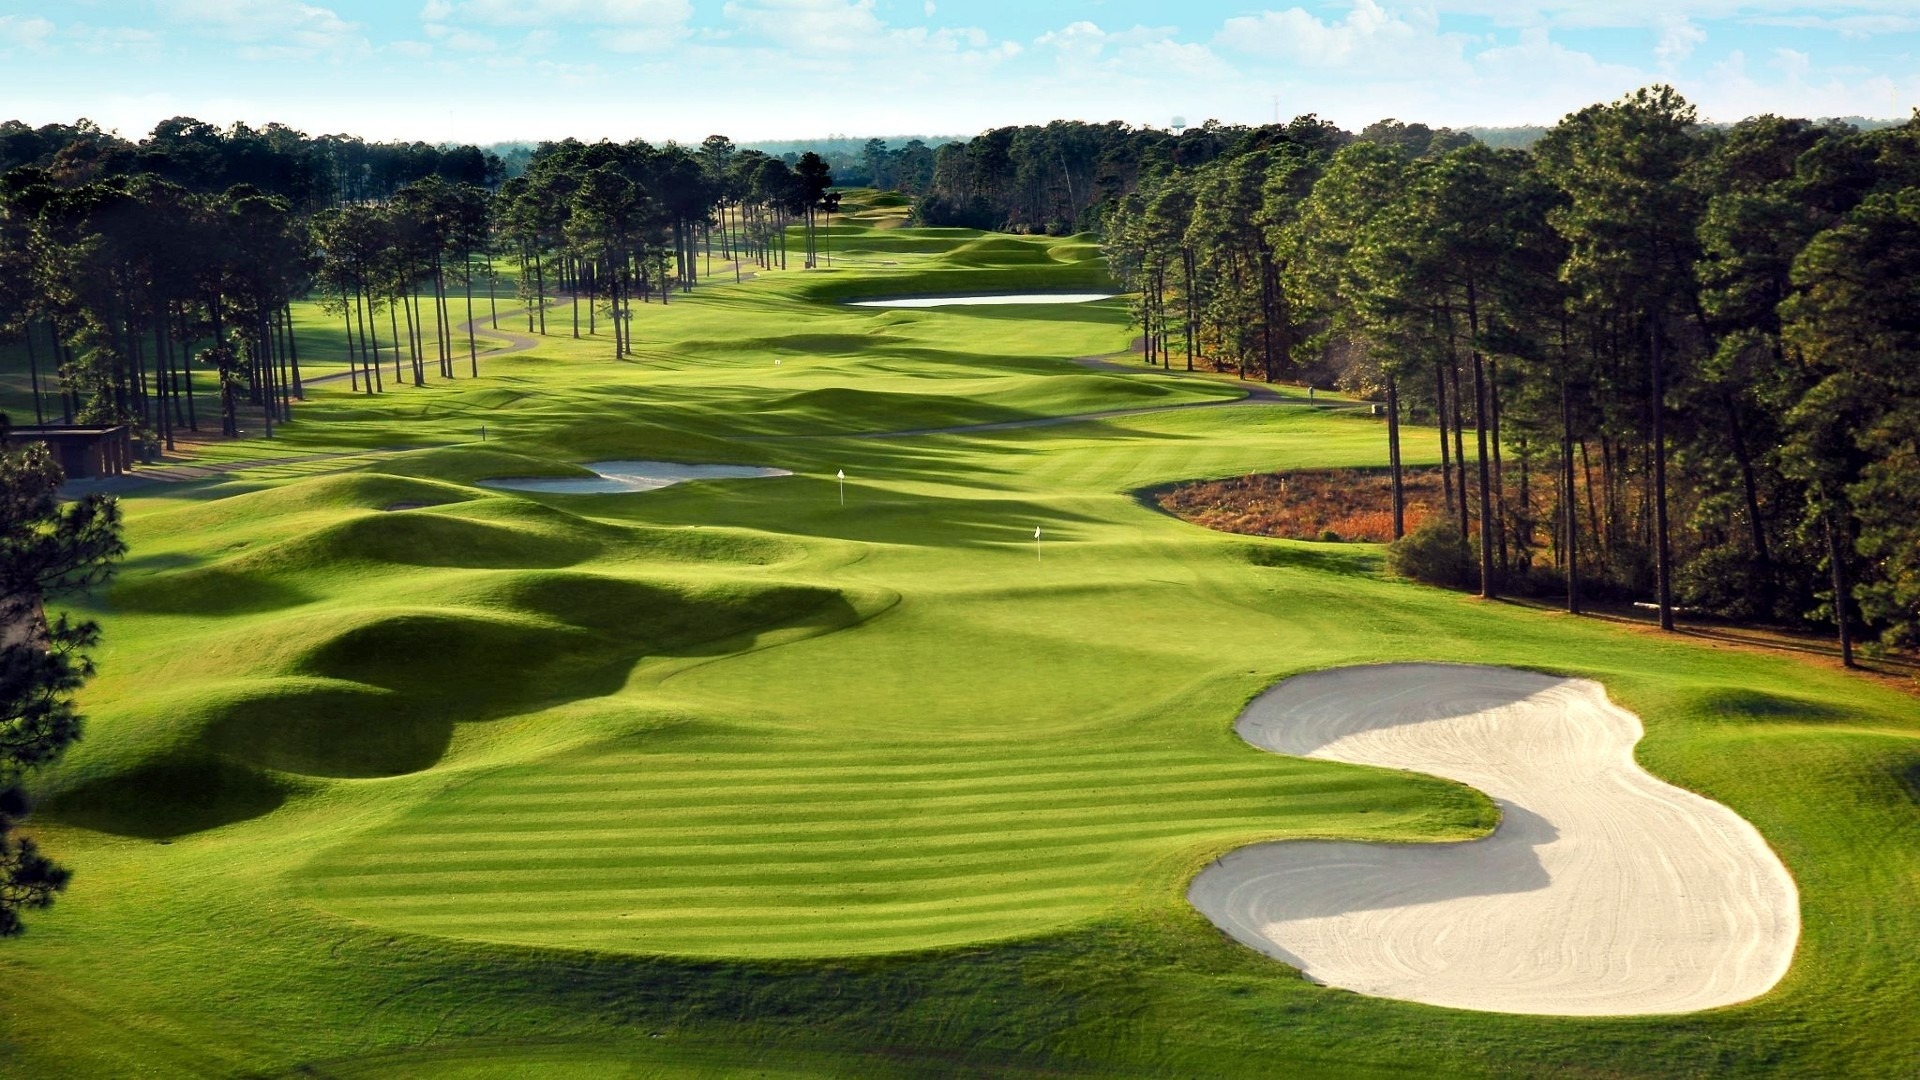 fields-green-golf-course-courses-fields-nature-high-quality-picture.jpg